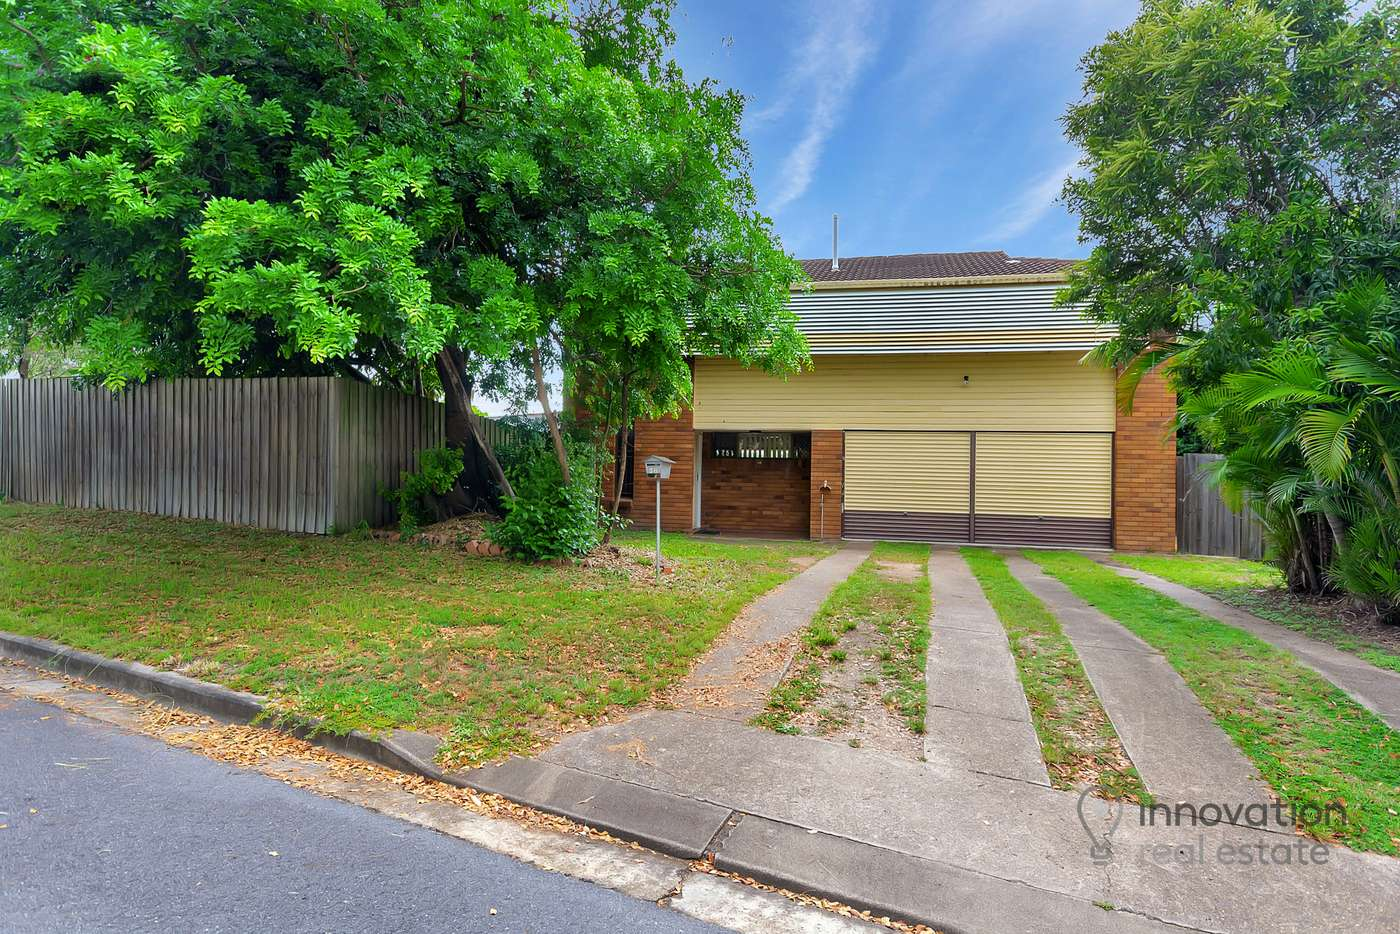 Main view of Homely house listing, 36 Mistral St, Jamboree Heights QLD 4074